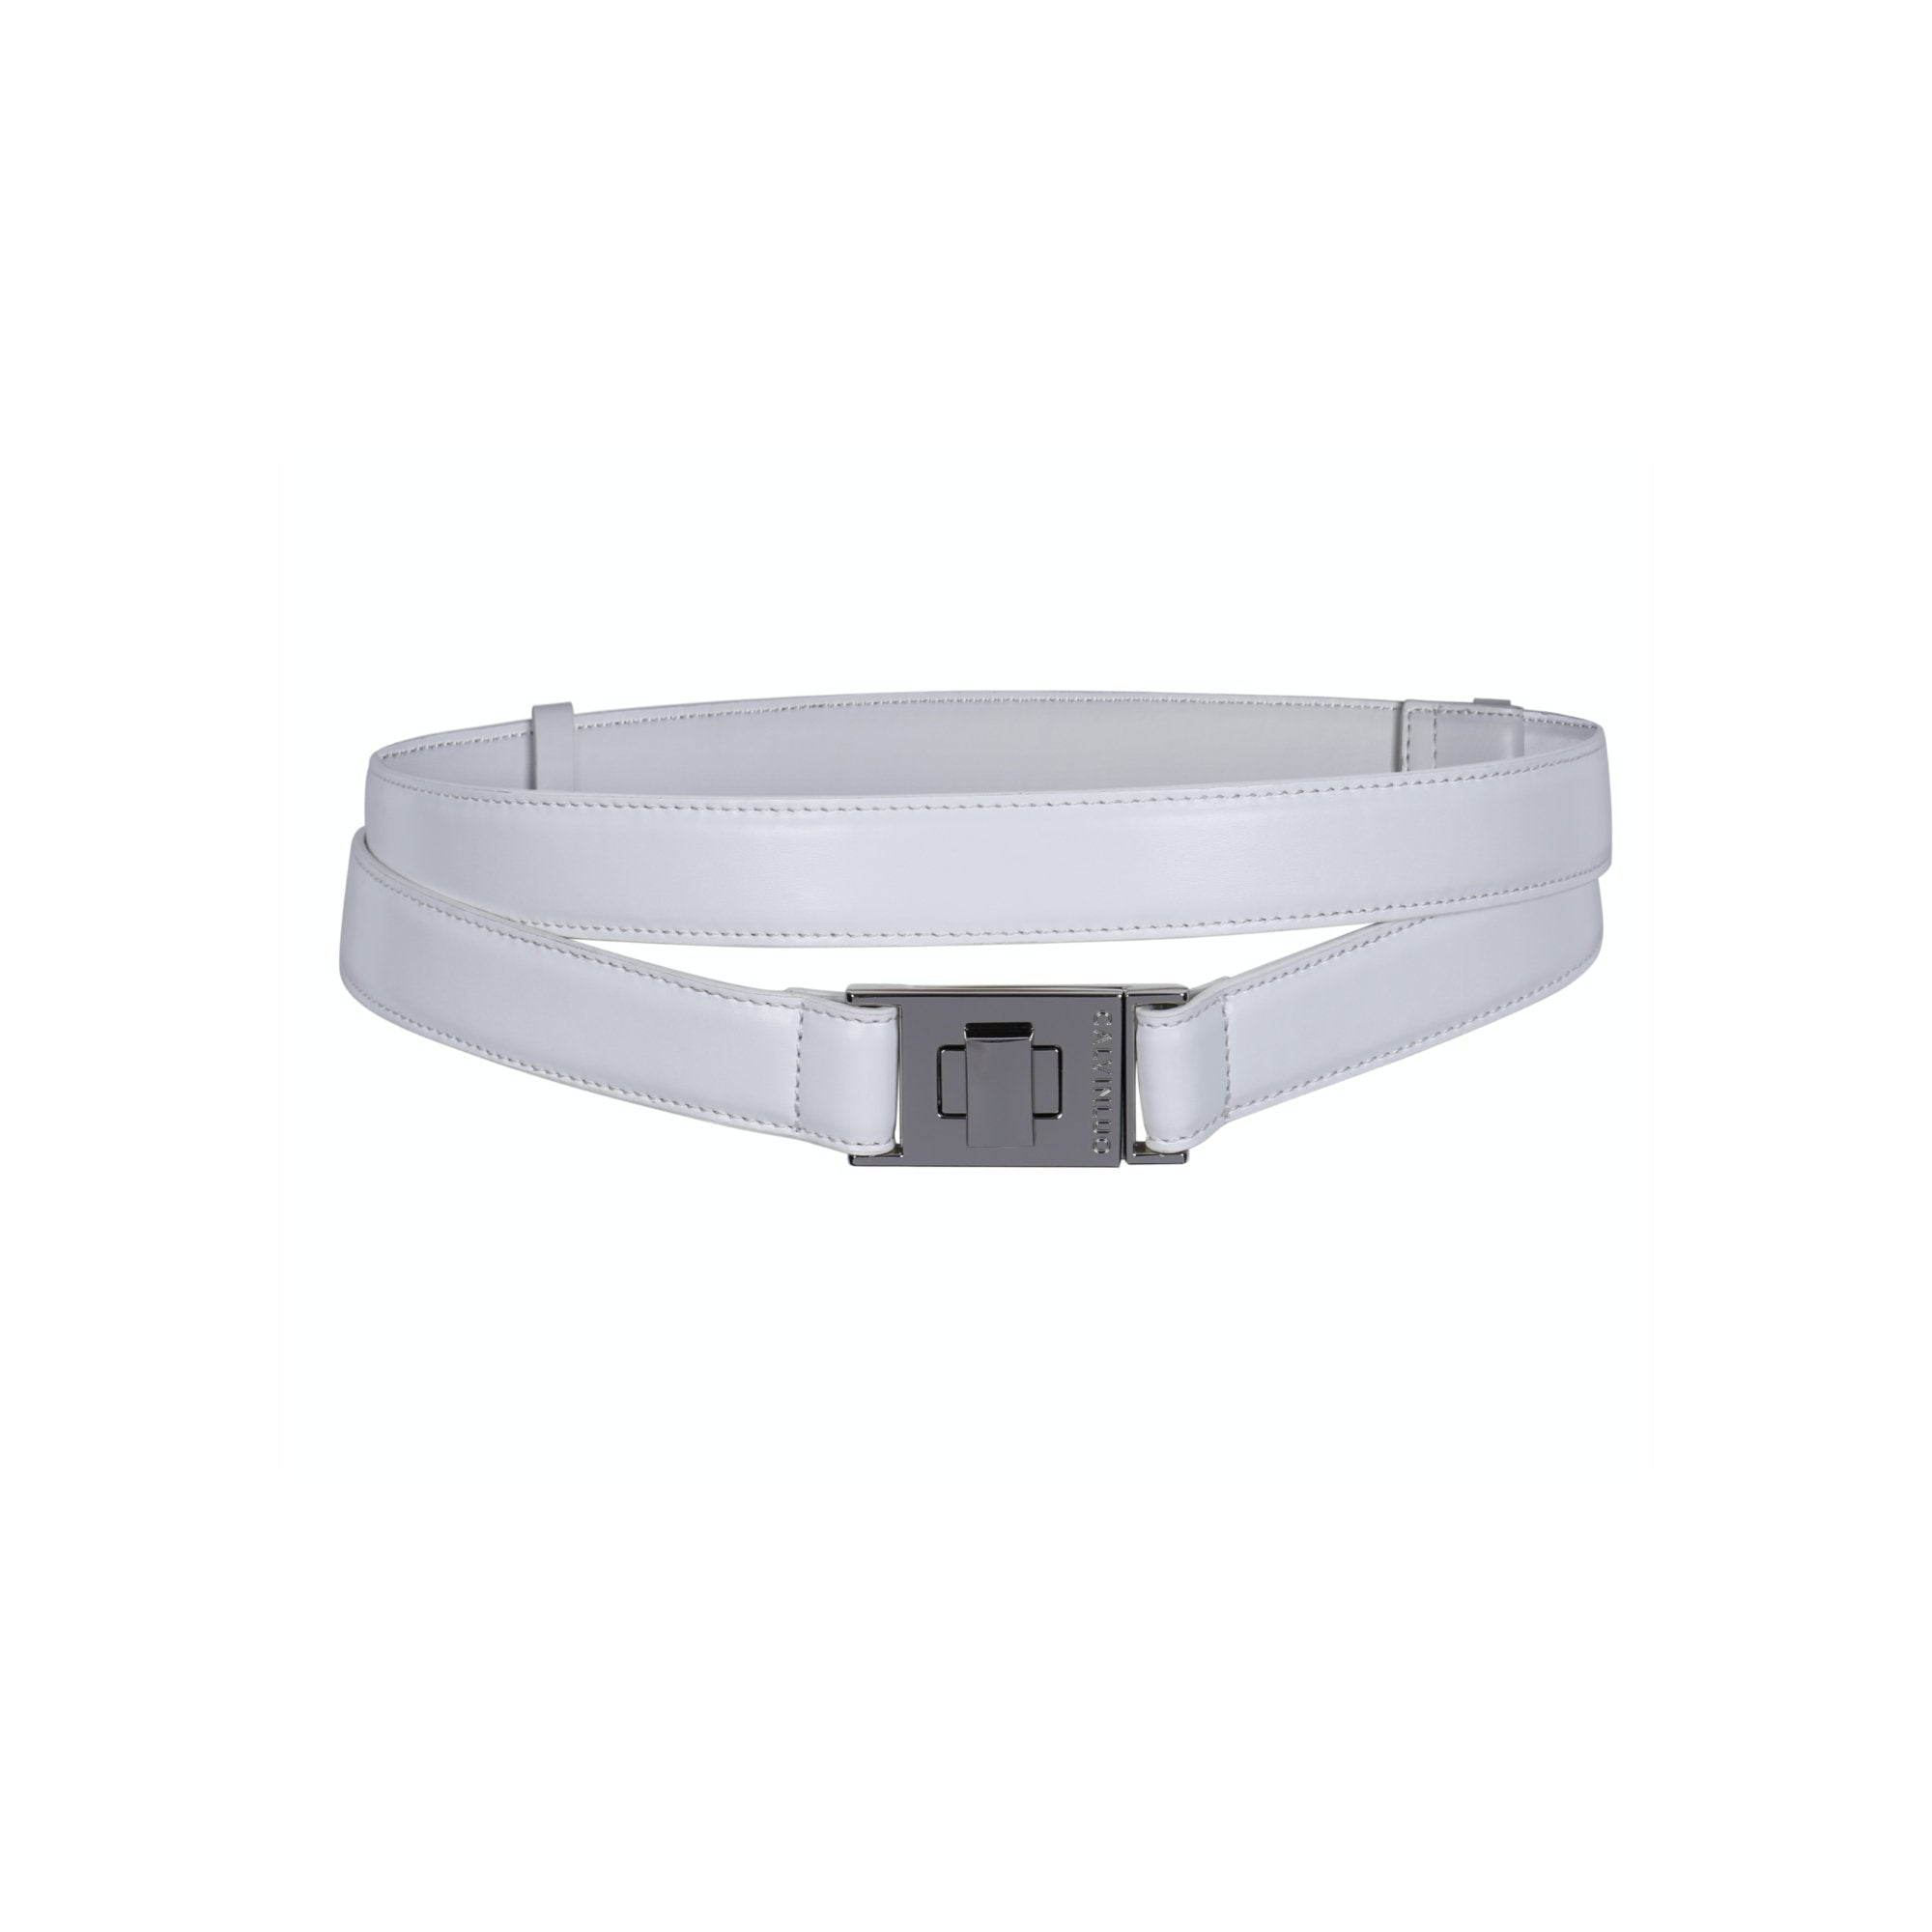 CALVIN LUO White Double Twist-Lock Wraparound Leather Belt | MADA IN CHINA